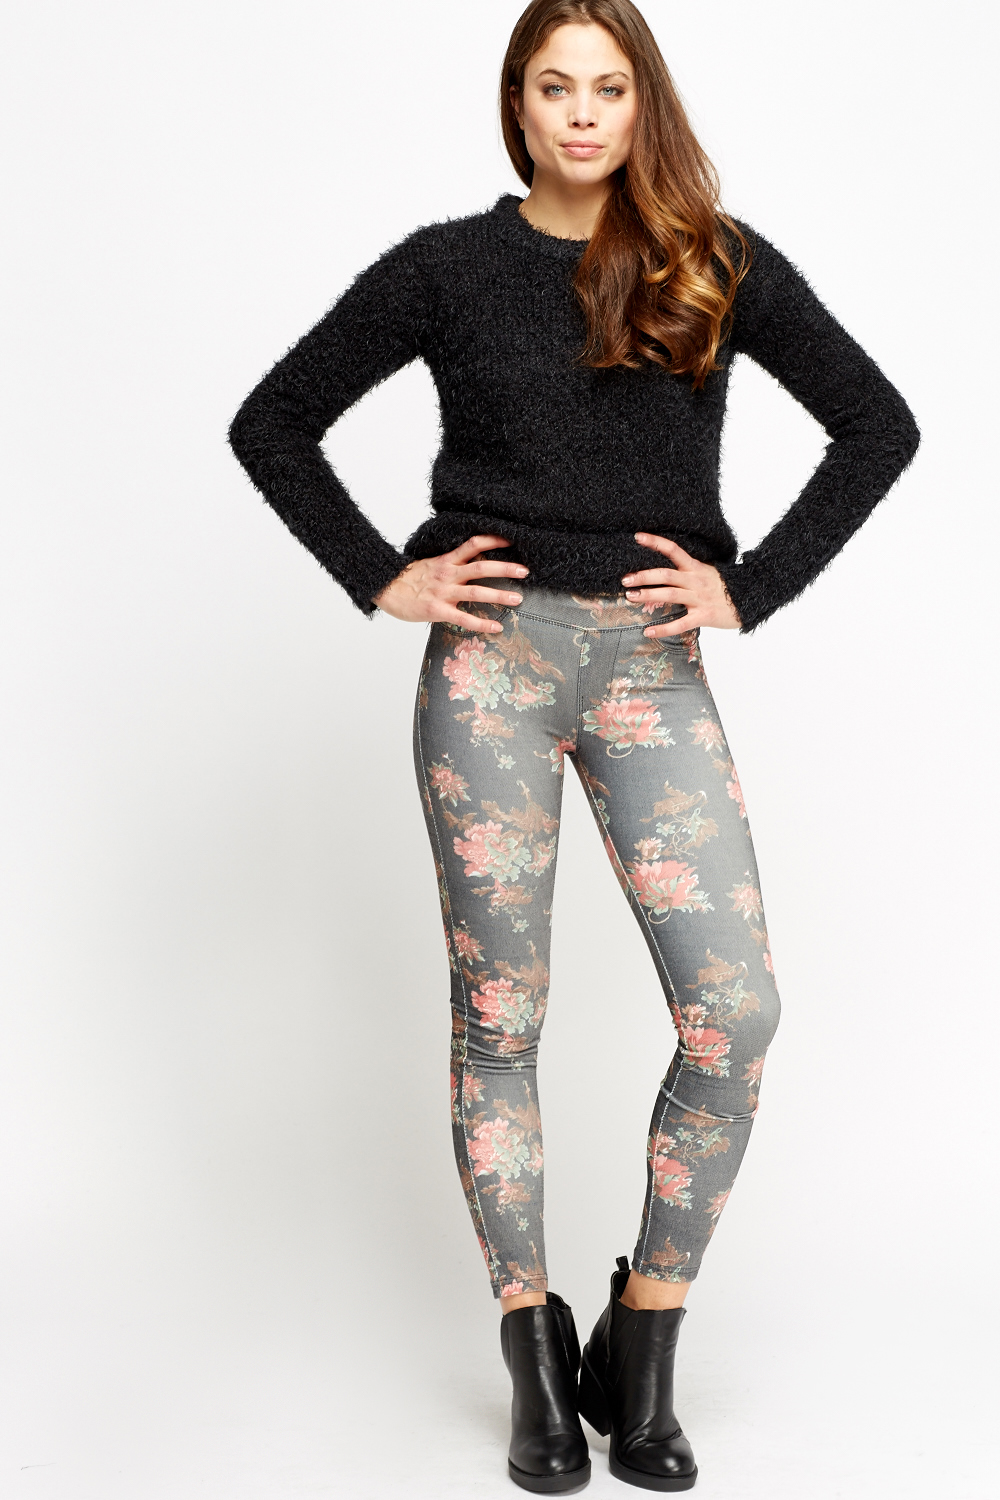 76e0d7b0d2ad5 Floral Printed Jeggings - Just £2